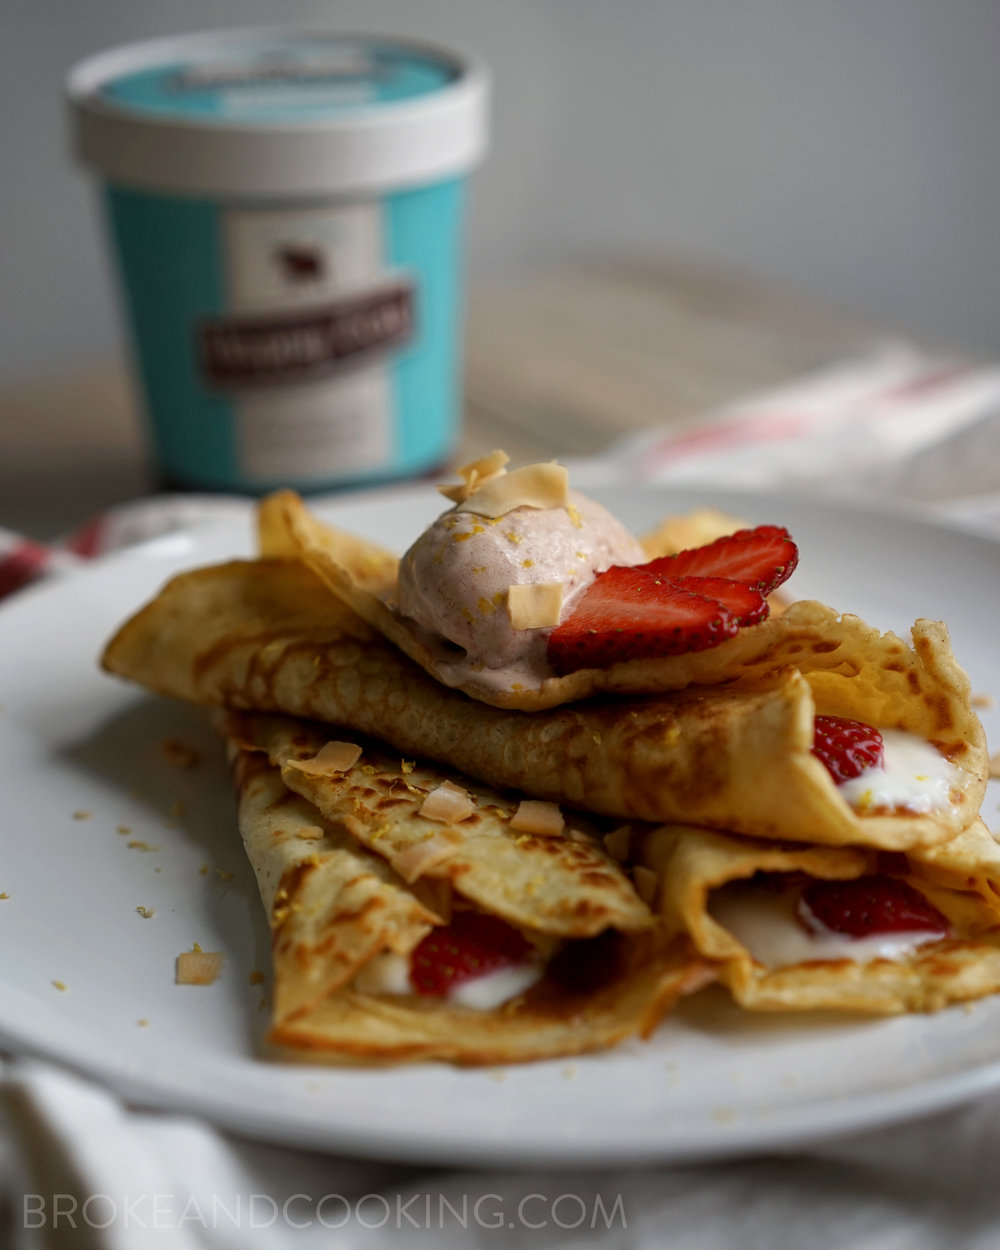 Bisquick Crepes Recipe by Broke and Cooking - www.brokeandcooking.com